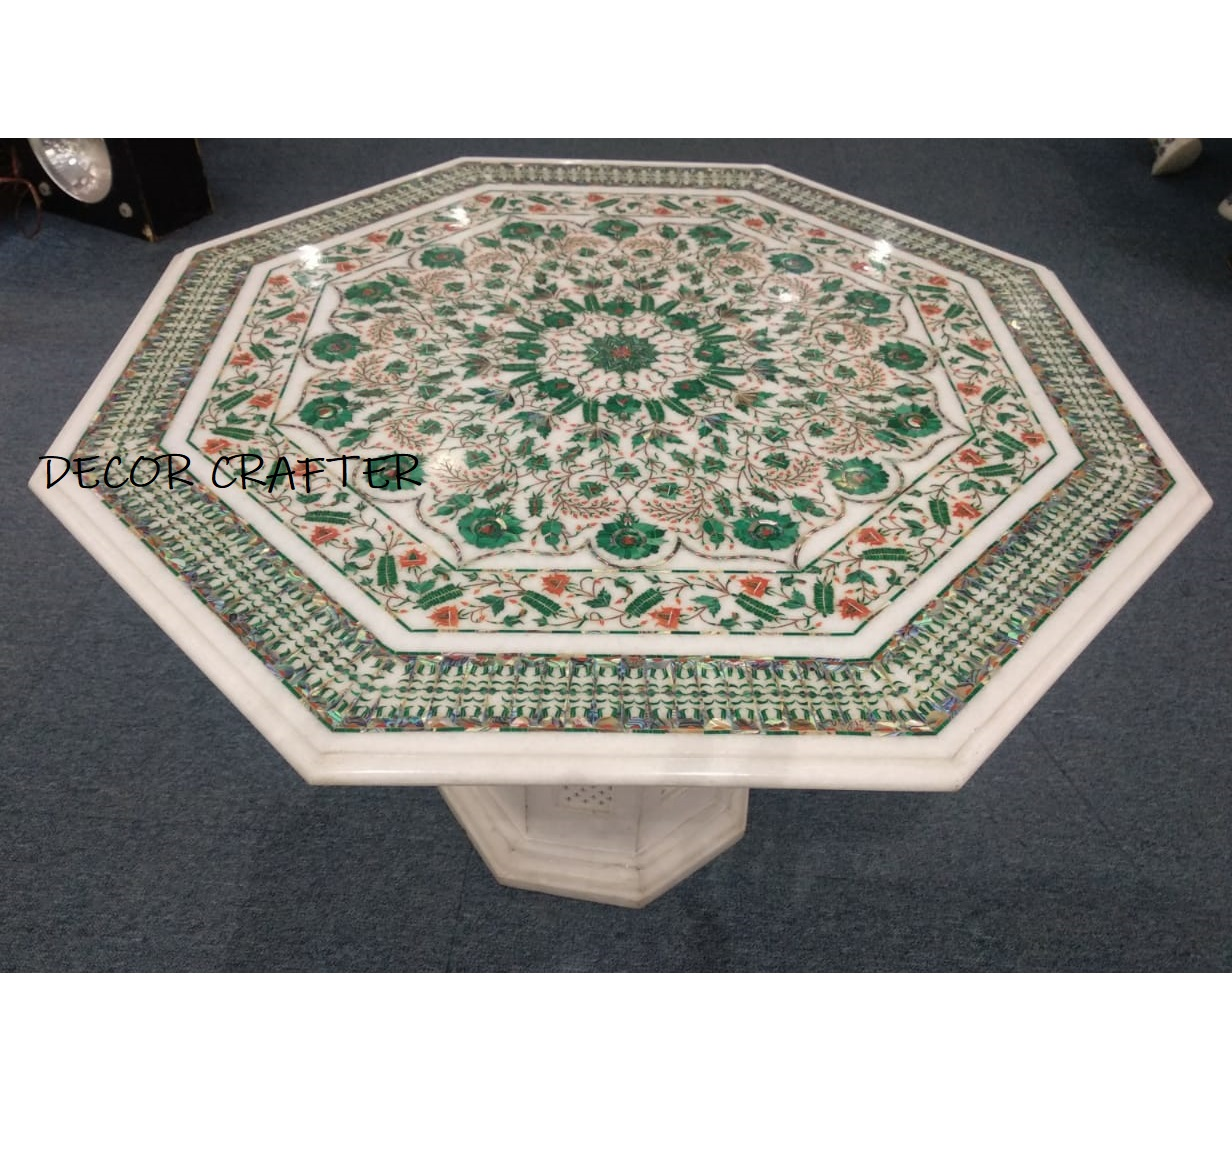 Marble Natural Stone Coffee Table Having Semi-precious Stone Inlay Work